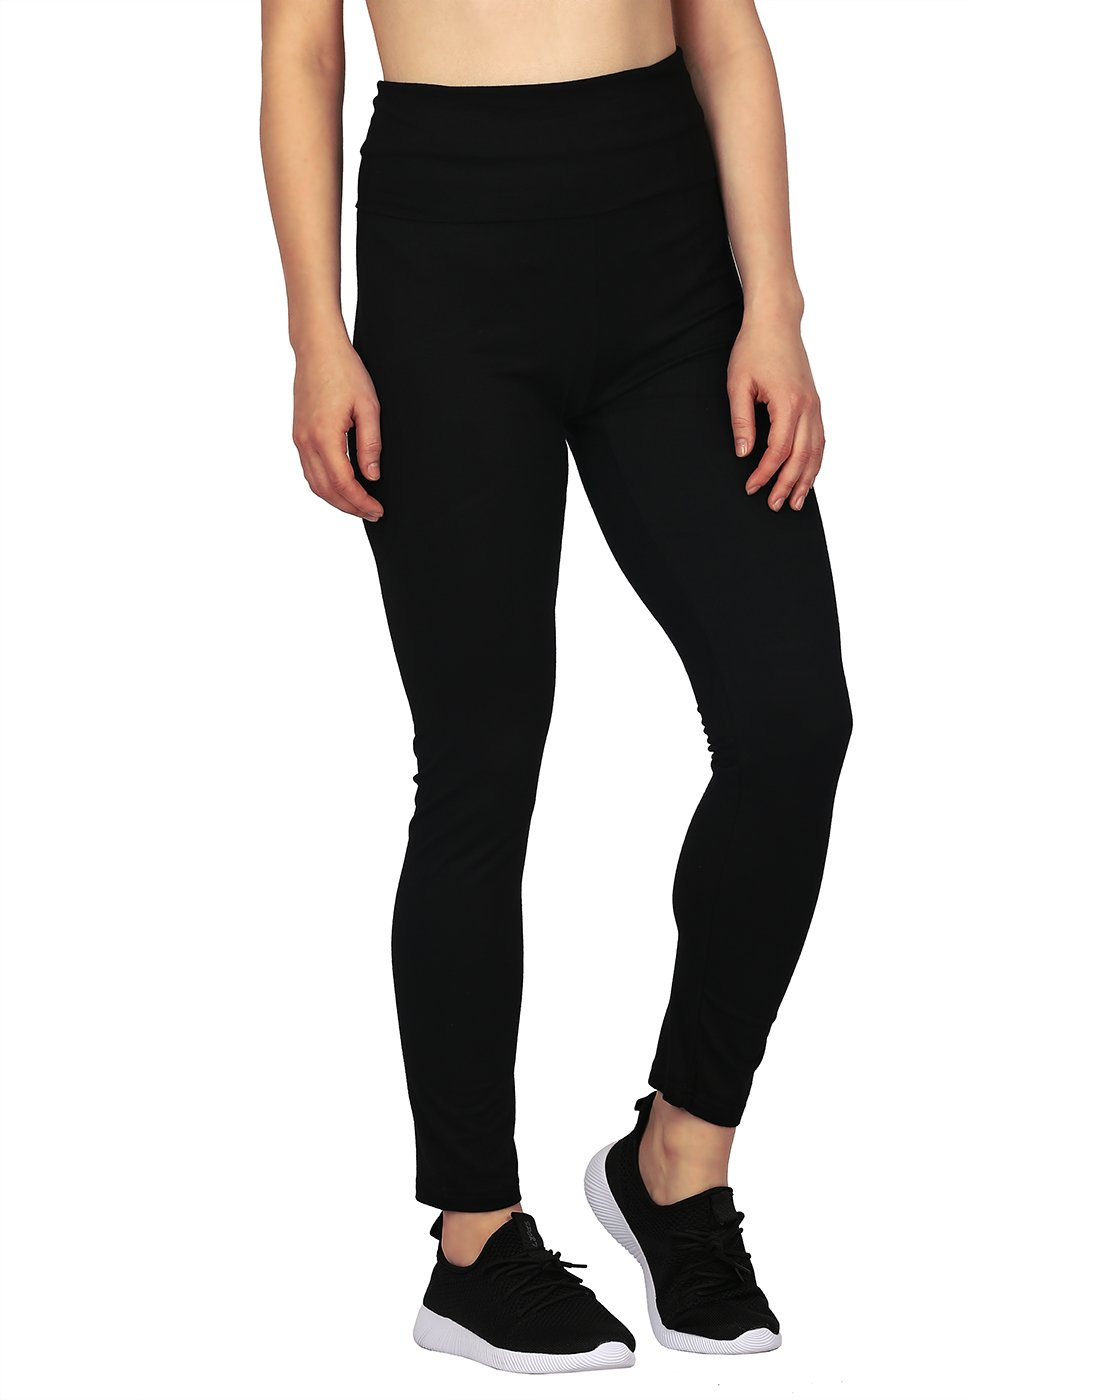 HDE Women's Maternity Yoga Pants Pregnancy Stretch Fold Over Lounge Leggings (Black, X-Large)